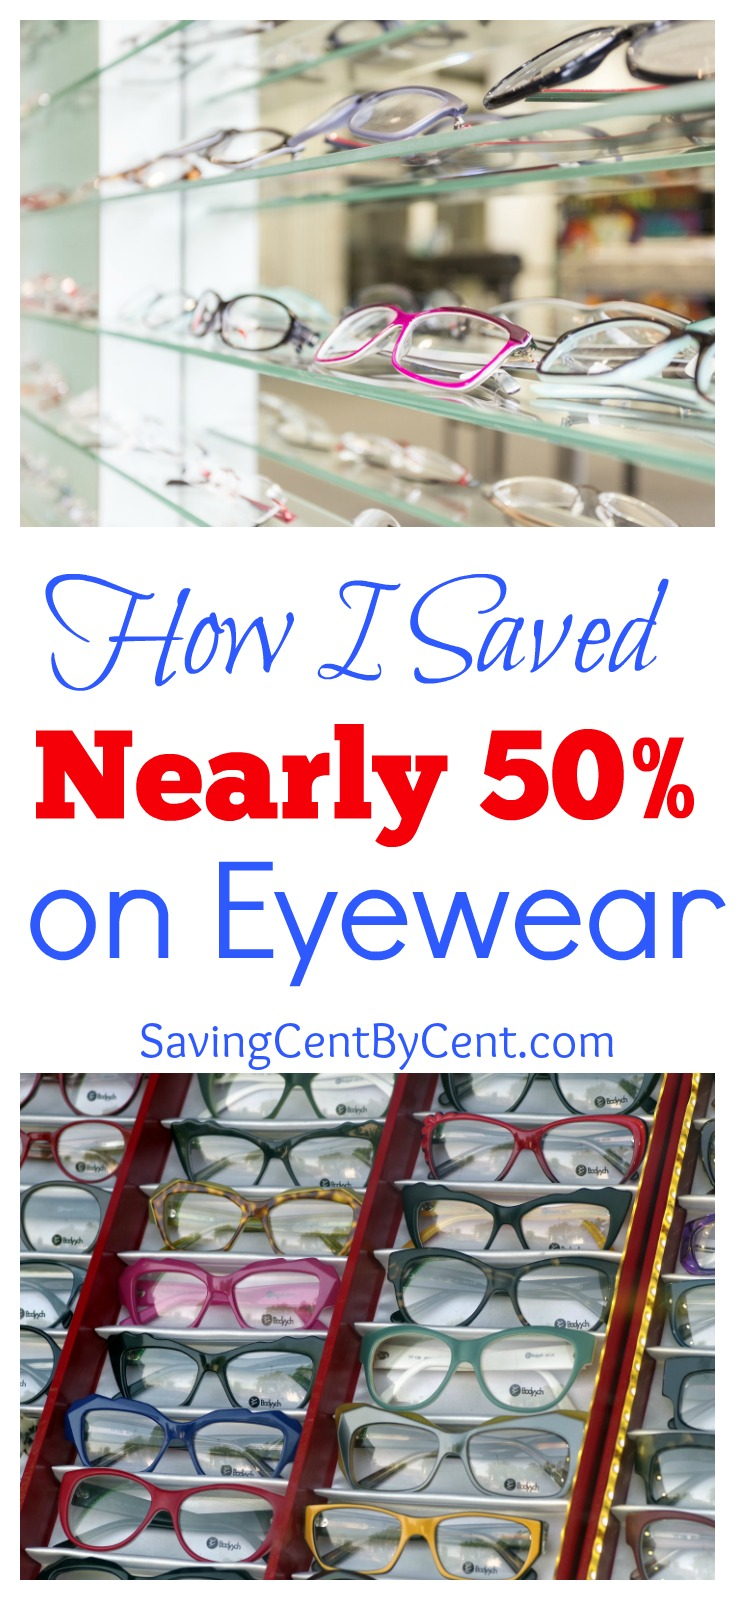 Save Money on Eyewear